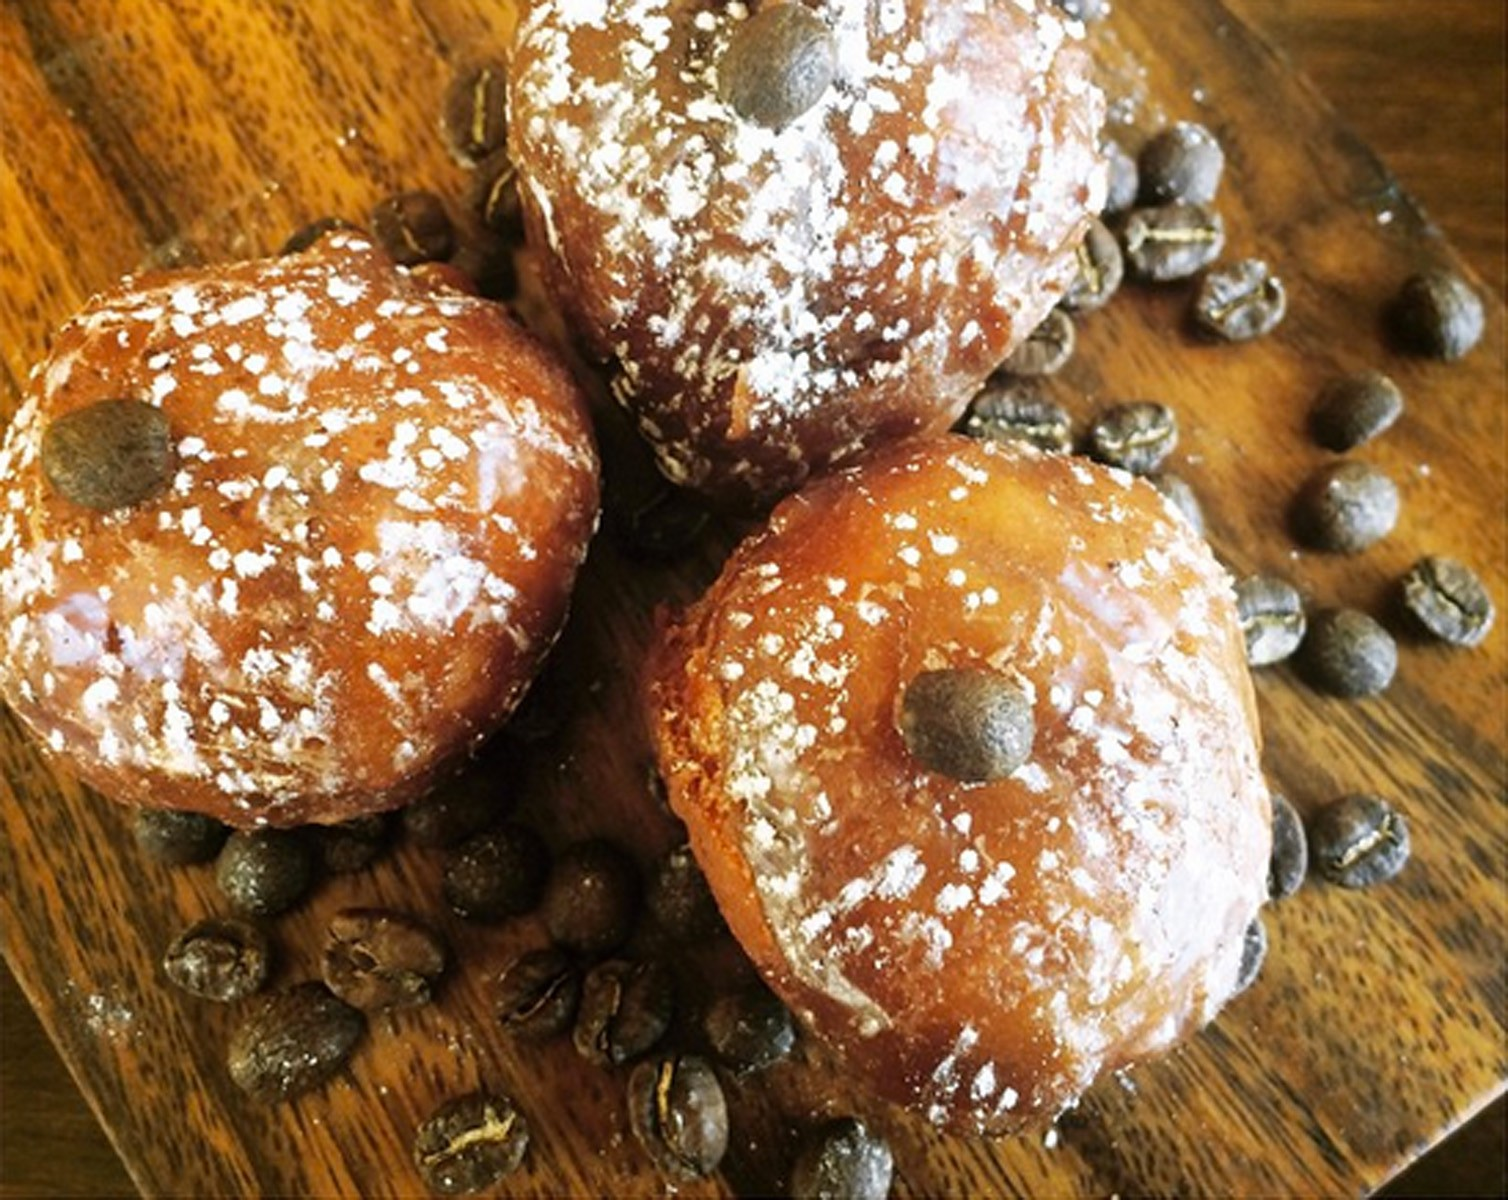 Brioche Donuts made with Stumptown coffee